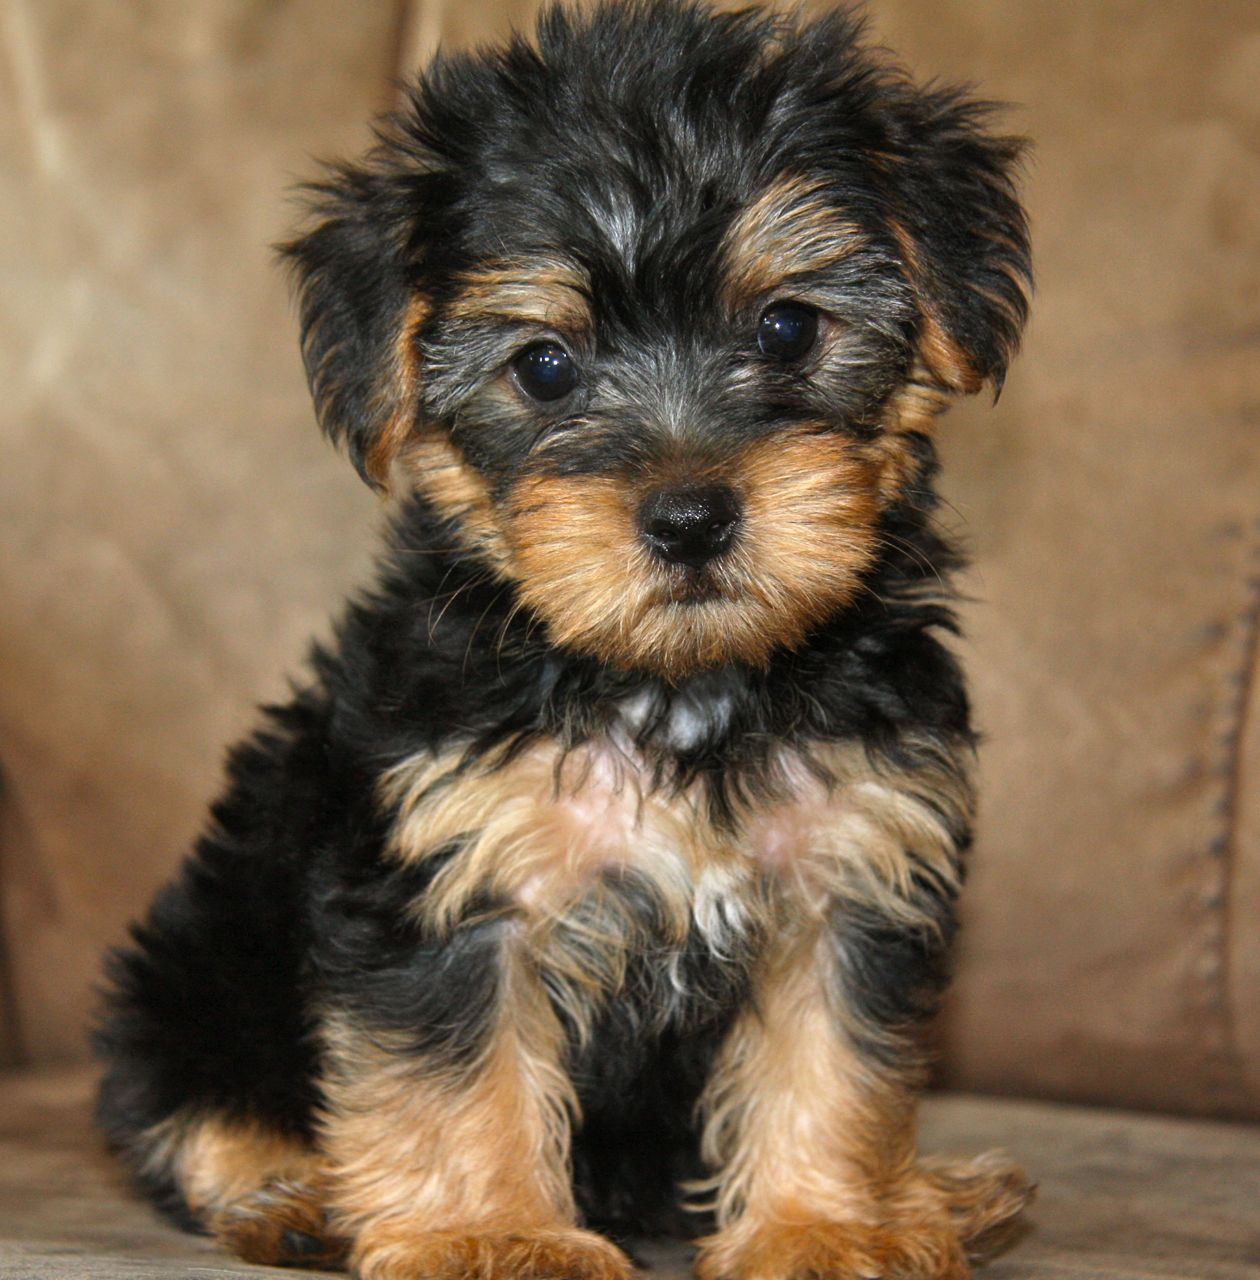 A Yorkipoo Aka Yorkapoo Or Yoodle Is A Mutt Or Mixed Breed